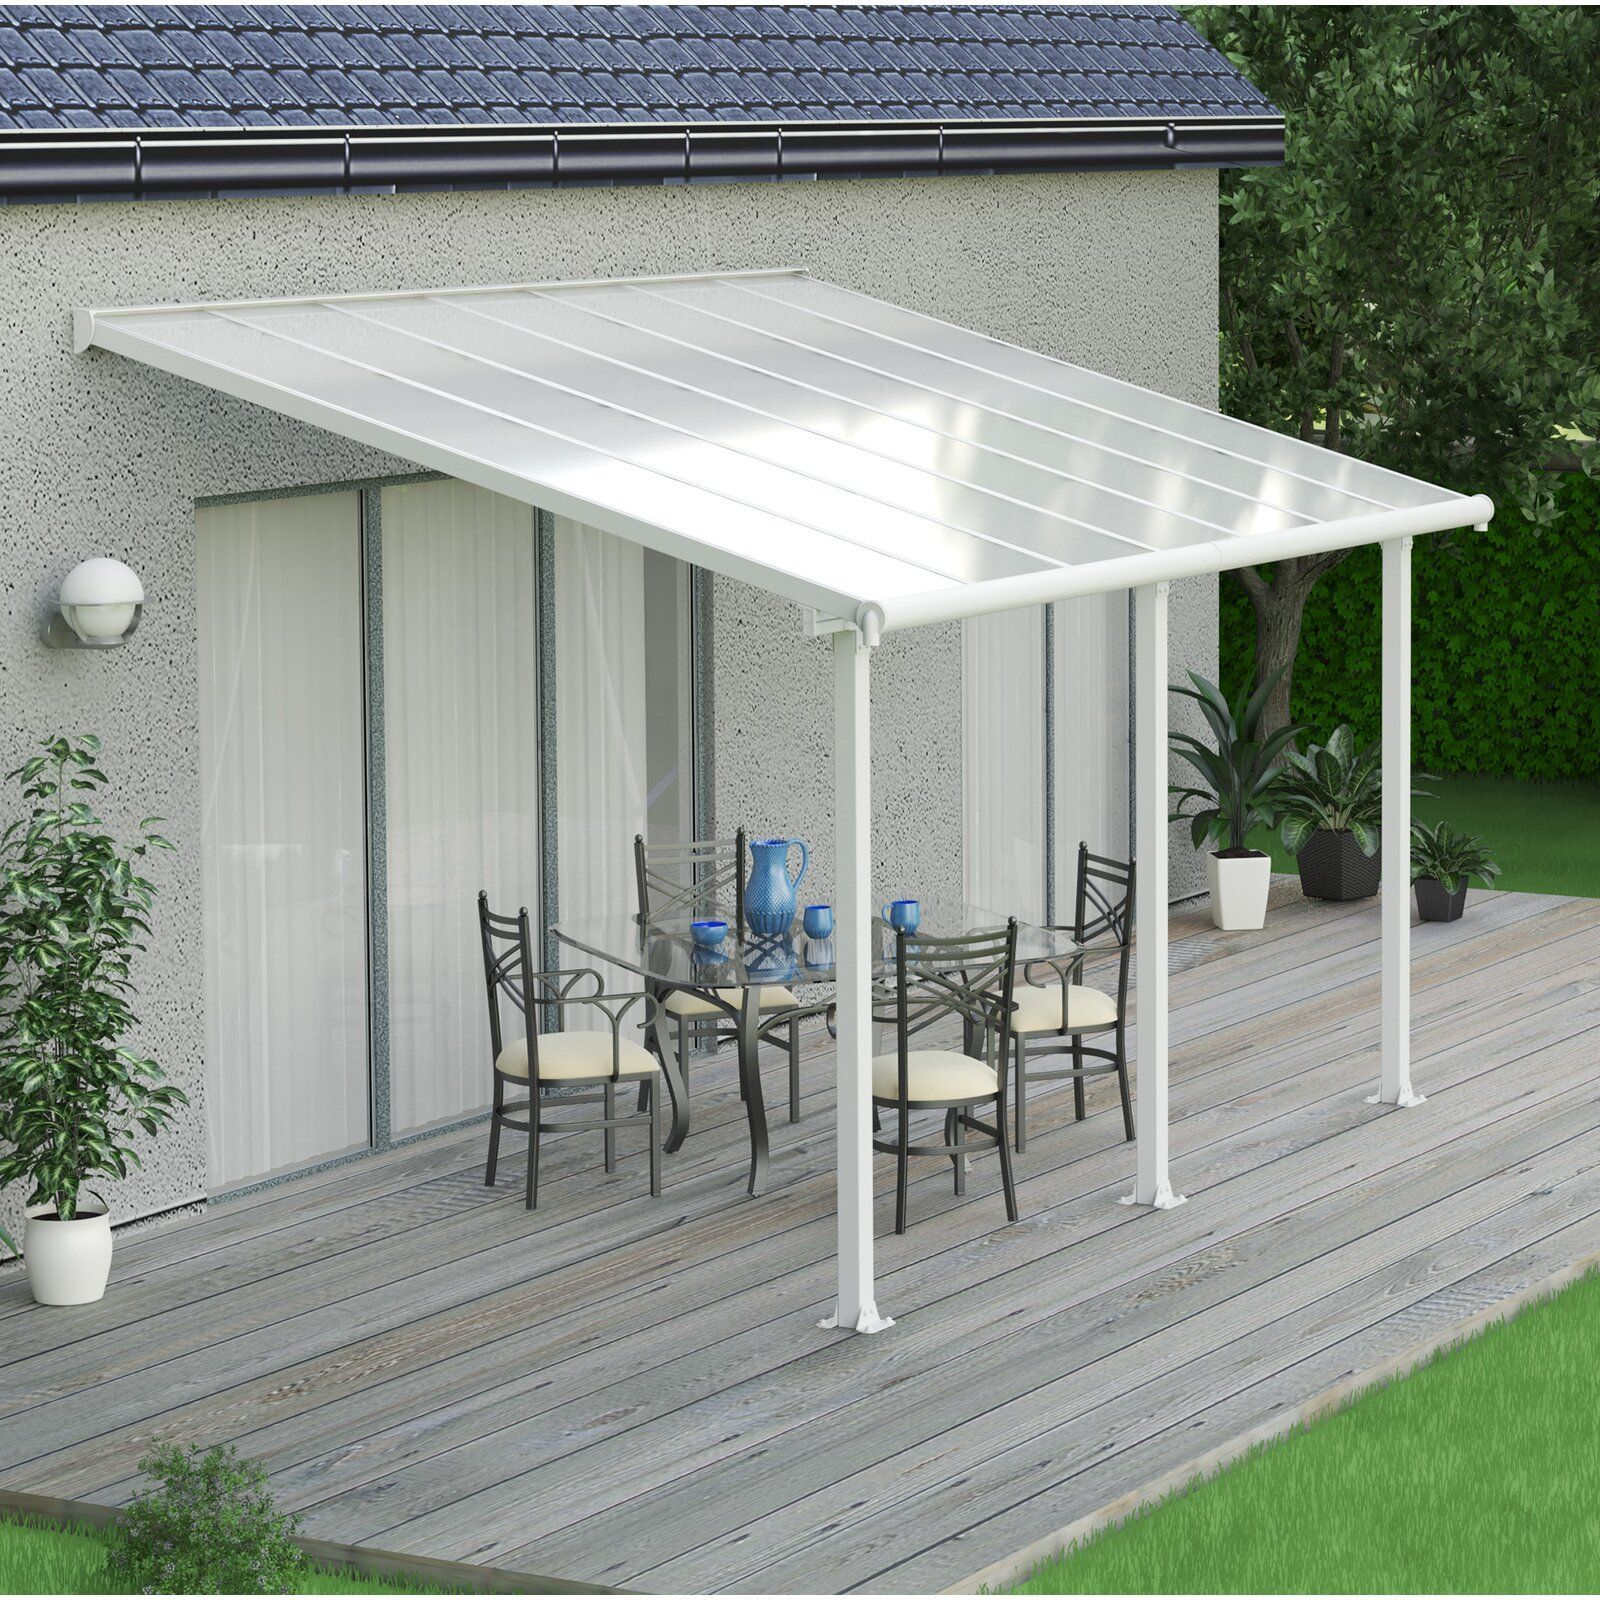 Palram Olympia Plastic Standard Patio Awning Reviews Wayfair In 2020 Pergola Patio Patio Pergola Designs